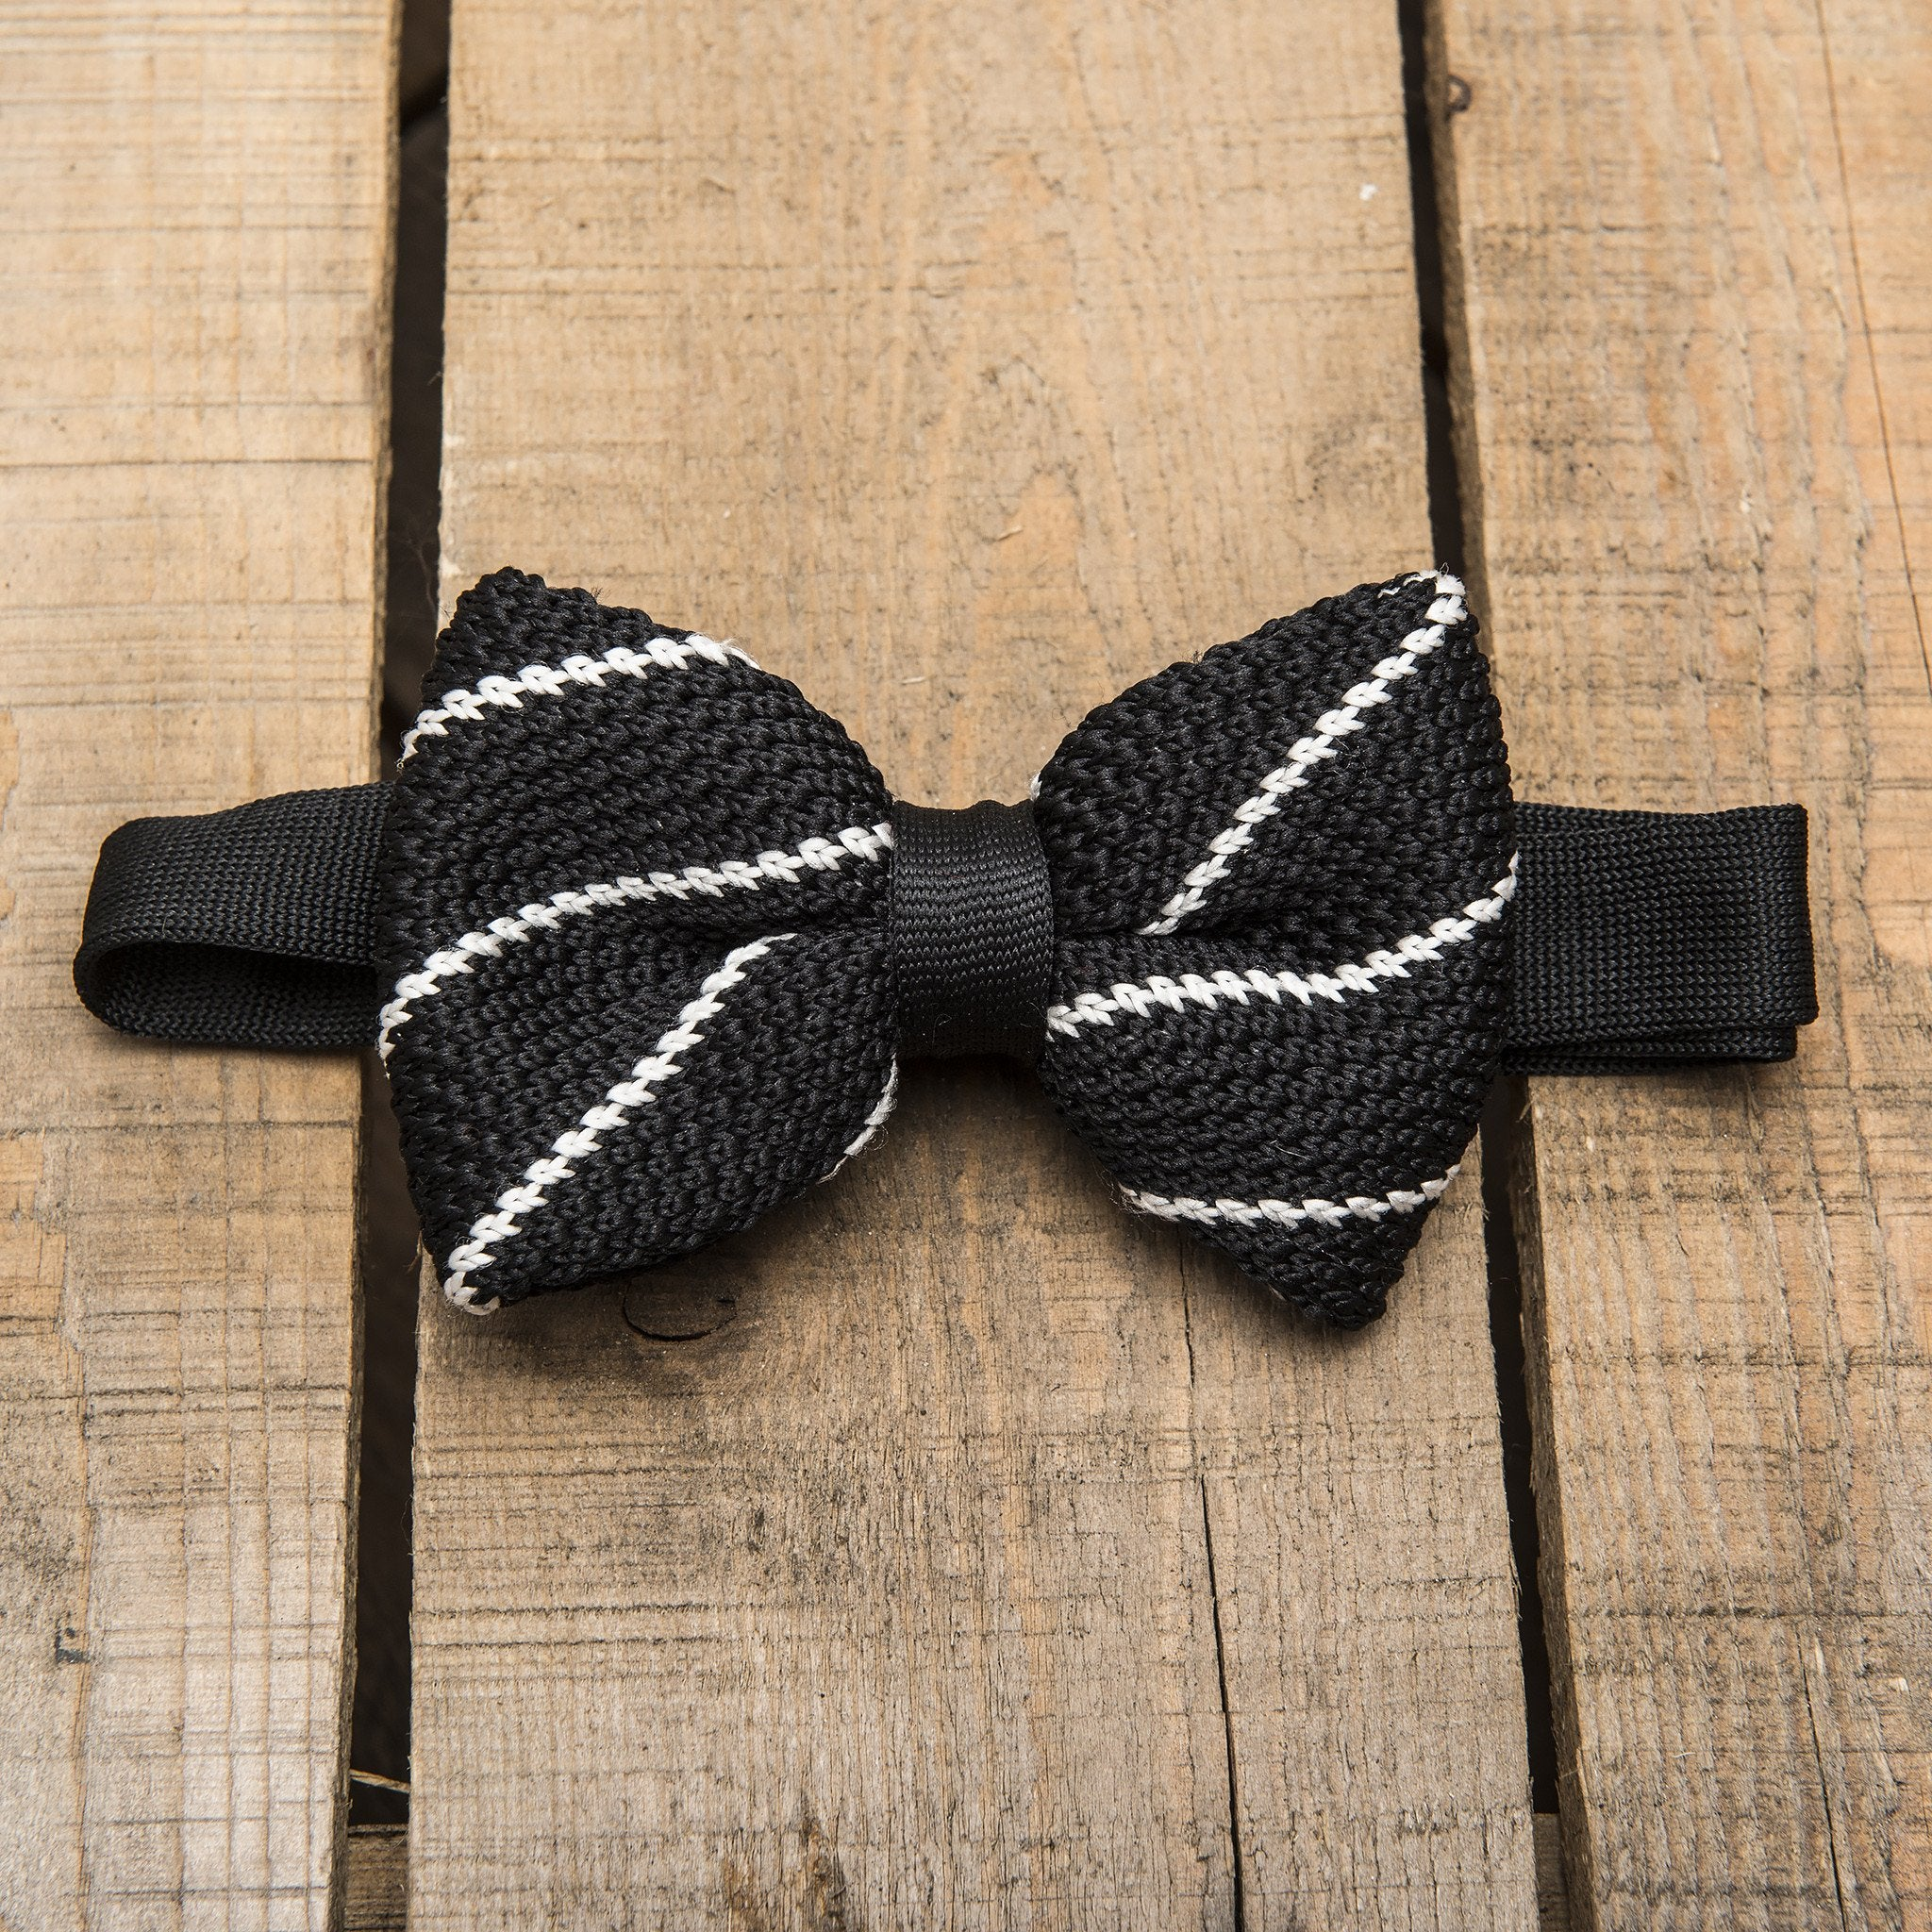 Black and White Stripe Tuxedo Knitted Bow Tie